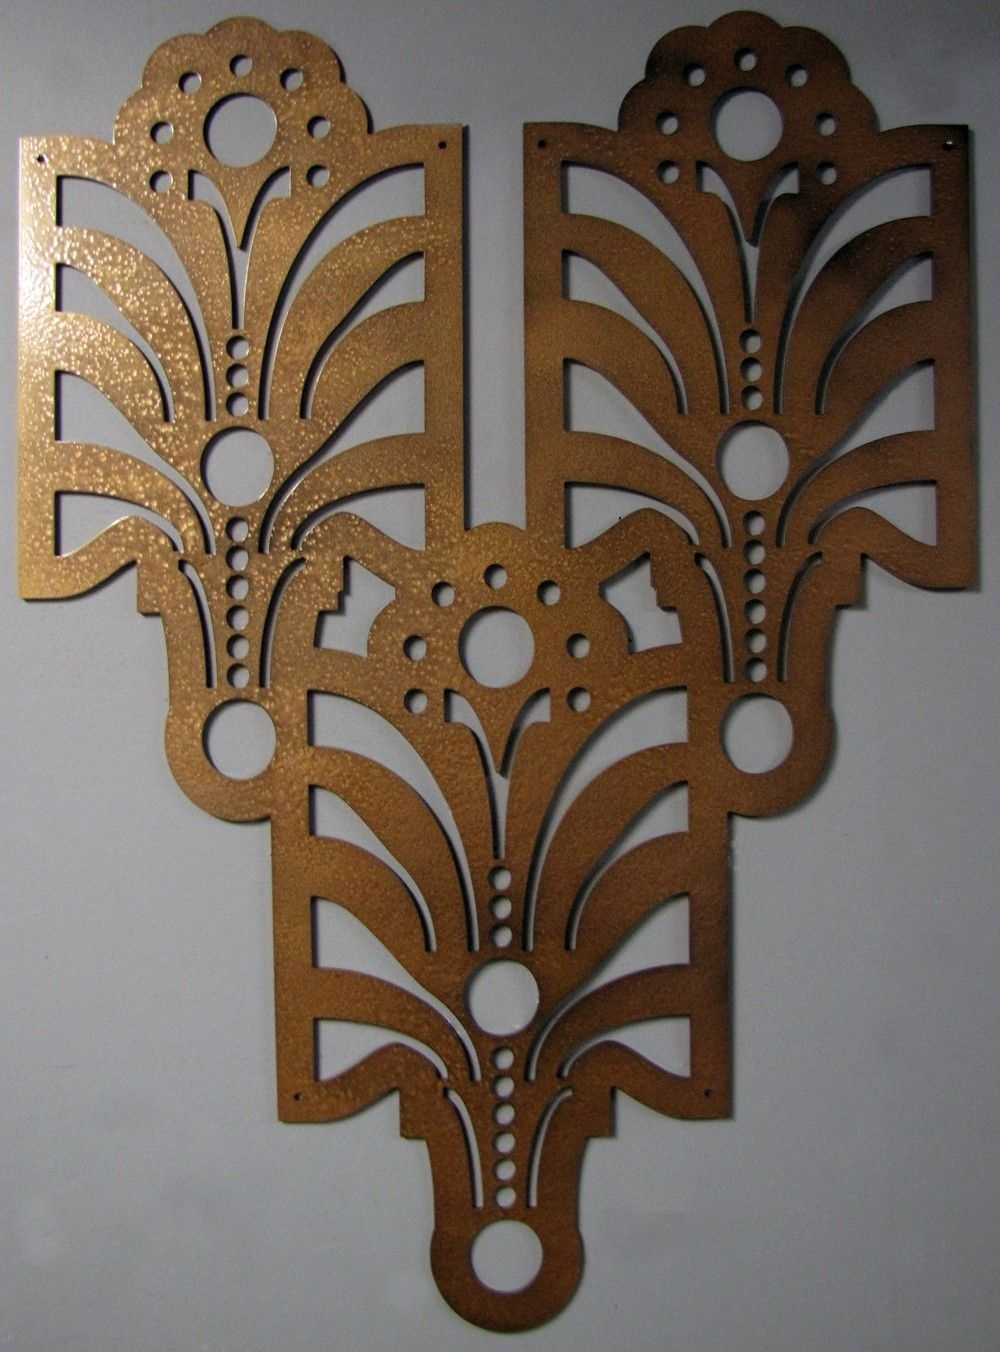 Deco Metal Wall Art | Art Deco | Pinterest | Metal Wall Art, Metal Regarding 2018 Art Deco Wall Art (View 2 of 20)